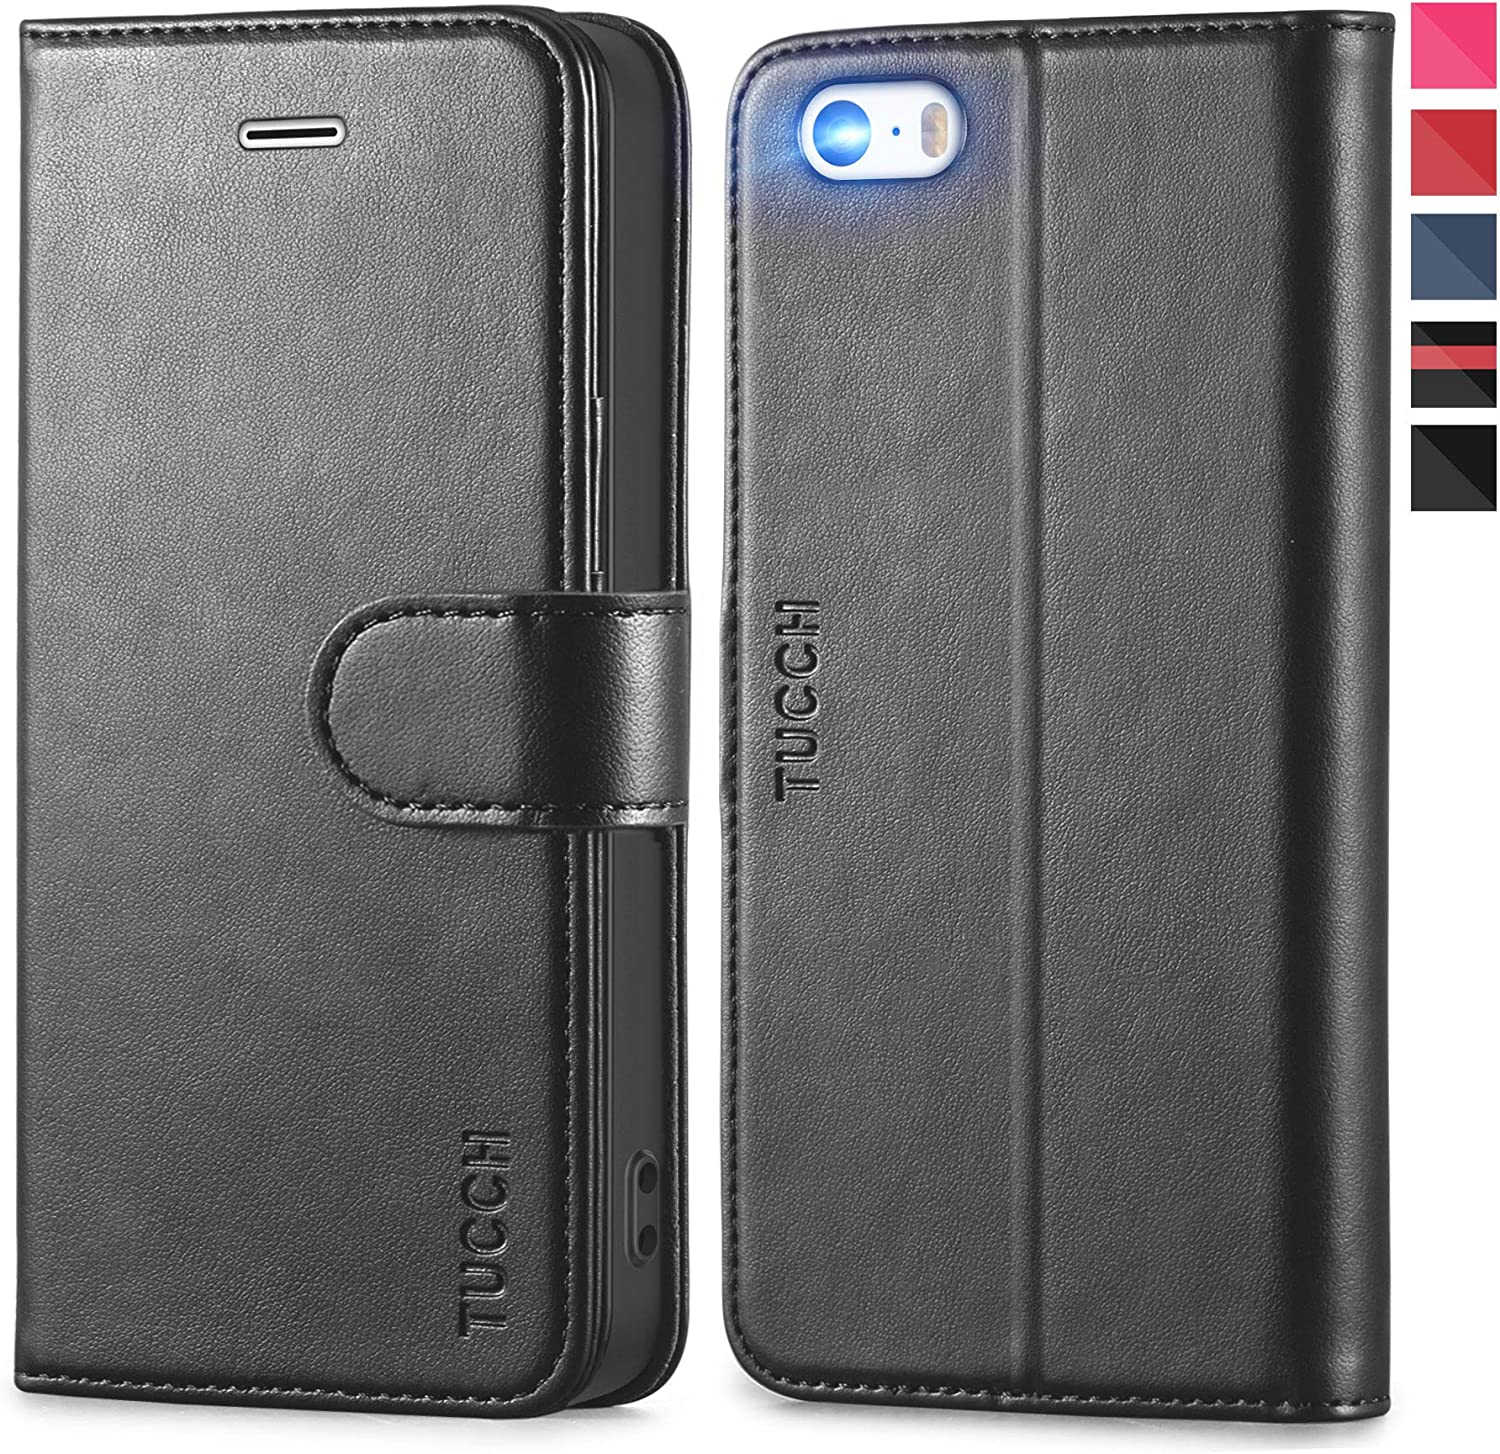 TUCCH iPhone SE 2016 Edition/5s/5 Case, Flip Stand PU Leather Folio Book Cover with [TPU Interior Case] Credit Card Slots, Magnetic Closure Compitible with iPhone SE/iPhone 5s/iPhone 5, Black